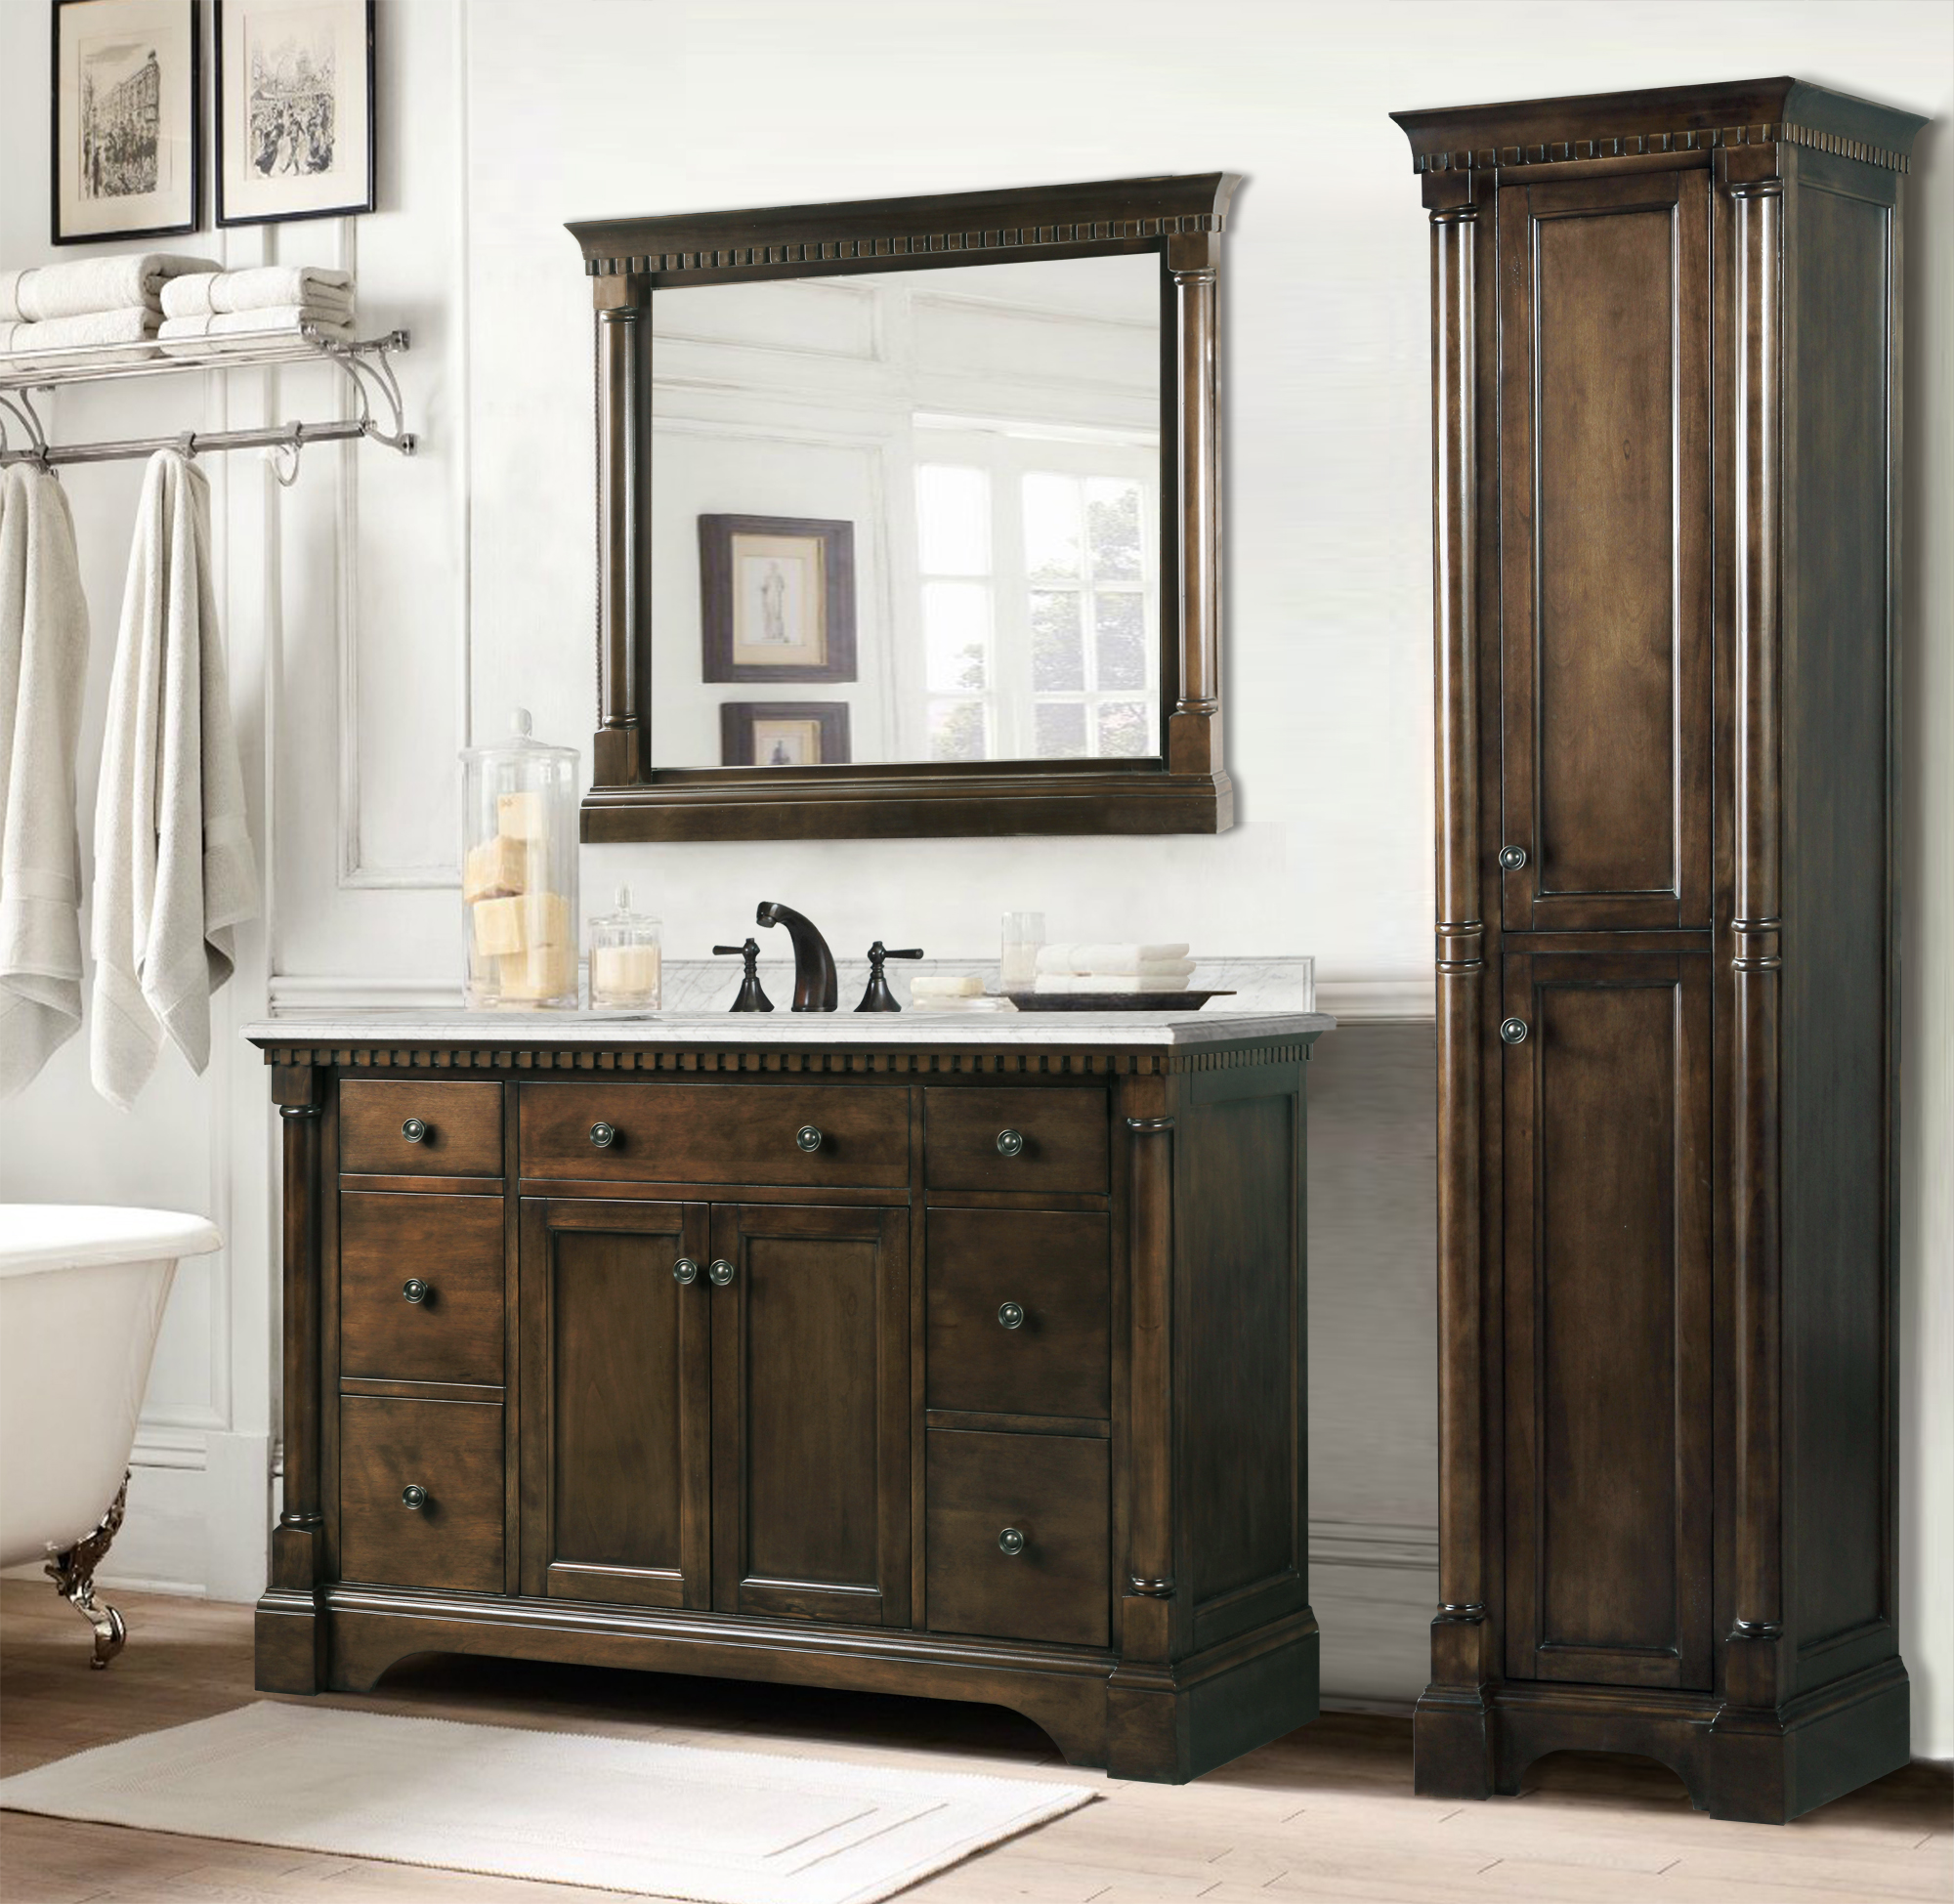 Bathroom Vanity Discount many people are looking for new bathroom vanities to remodeling